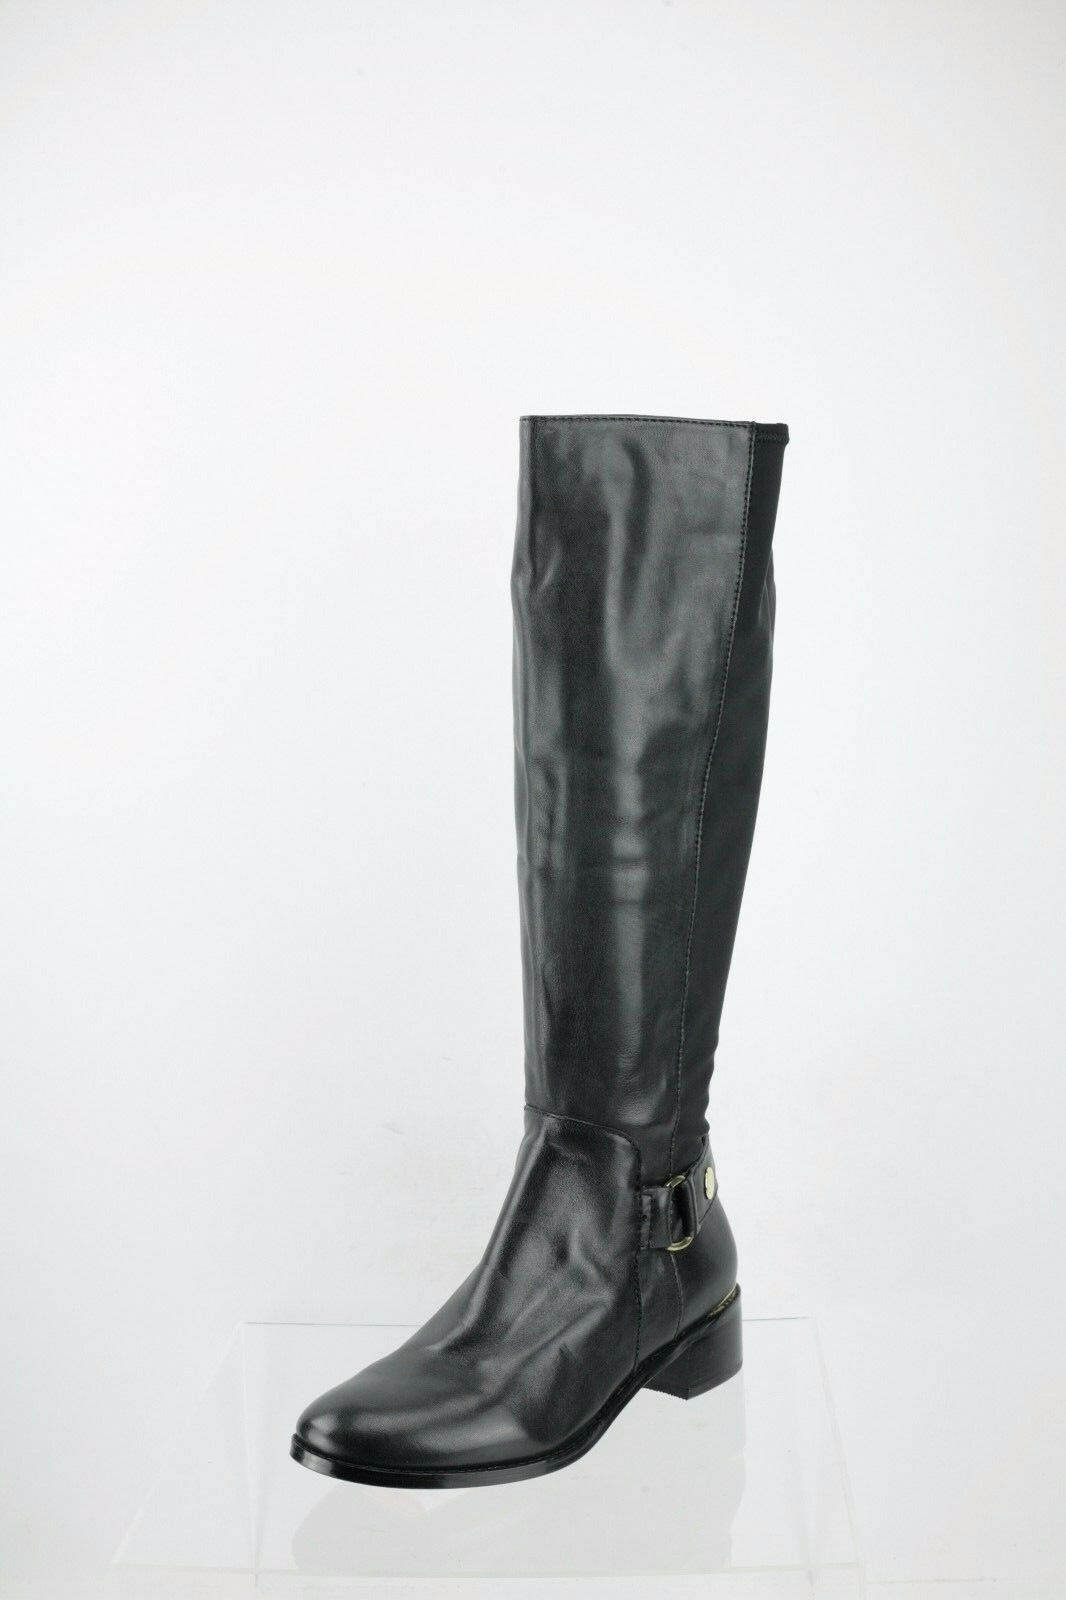 Steve Madden Ryyder Tall Moto Black Knee High Boots Women's Shoes Size 8 M NEW